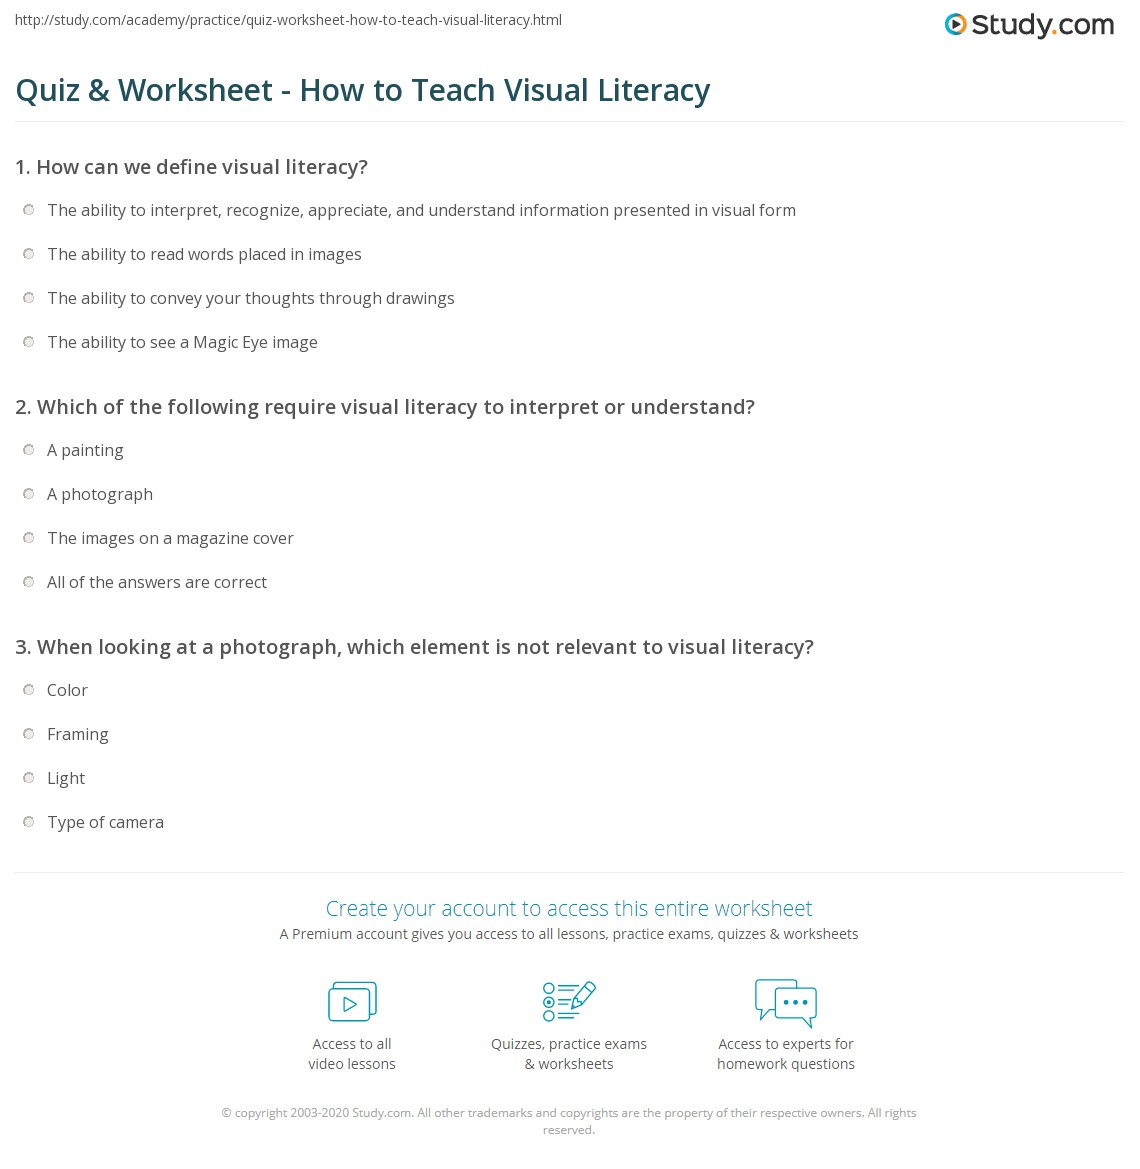 Quiz & Worksheet - How to Teach Visual Literacy | Study.com